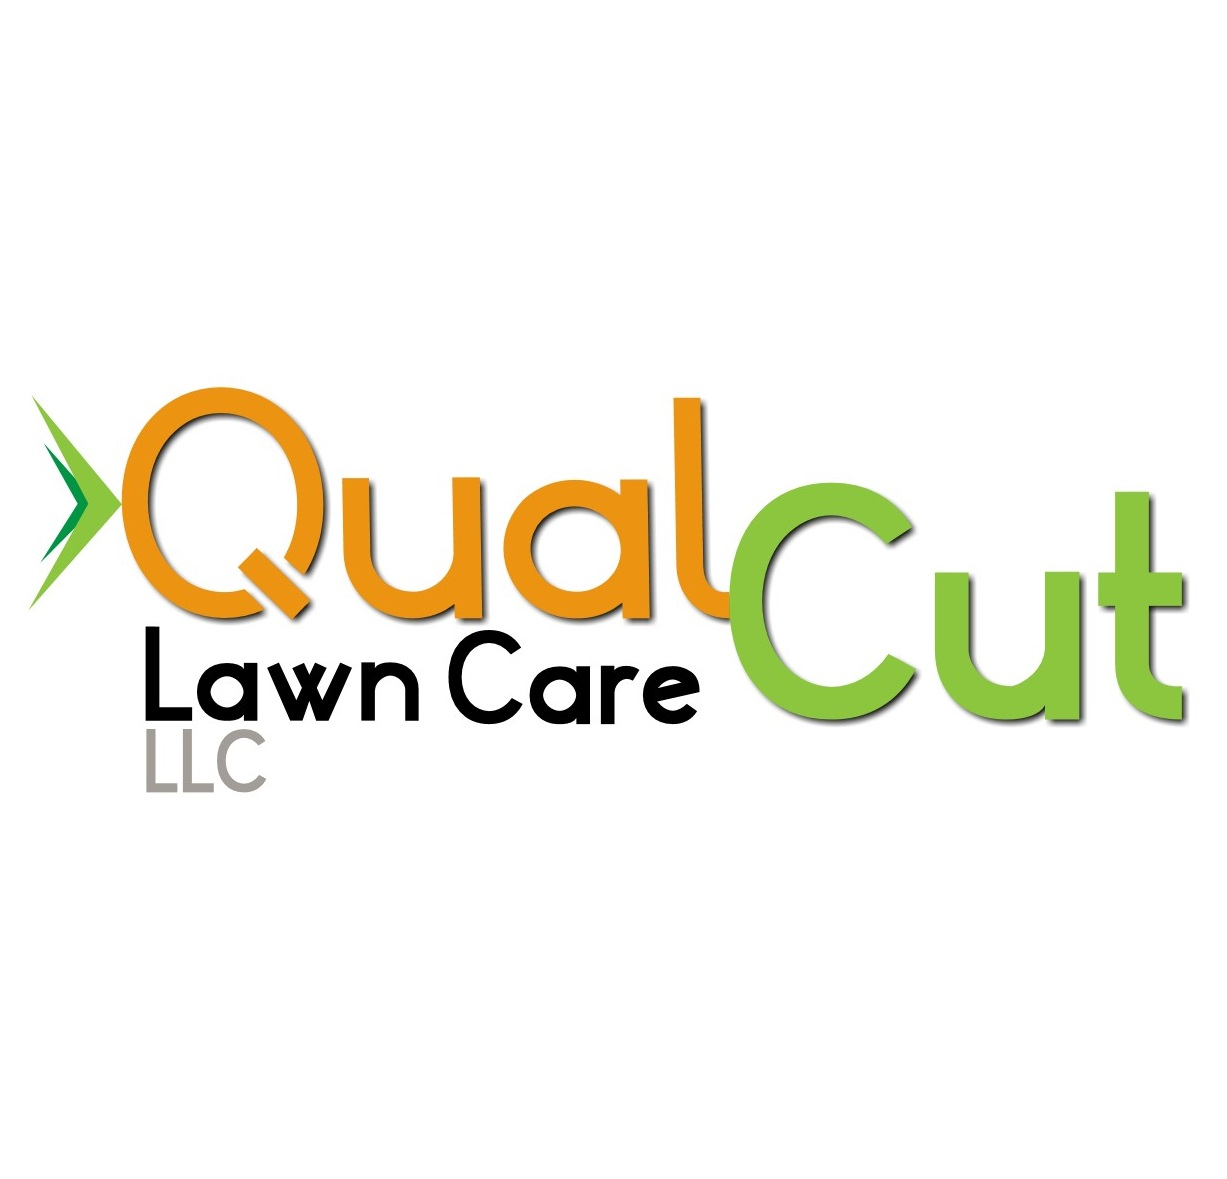 Photo of QualCut Lawn Care LLC, Lawn maintenance, fall cleanup, and more!